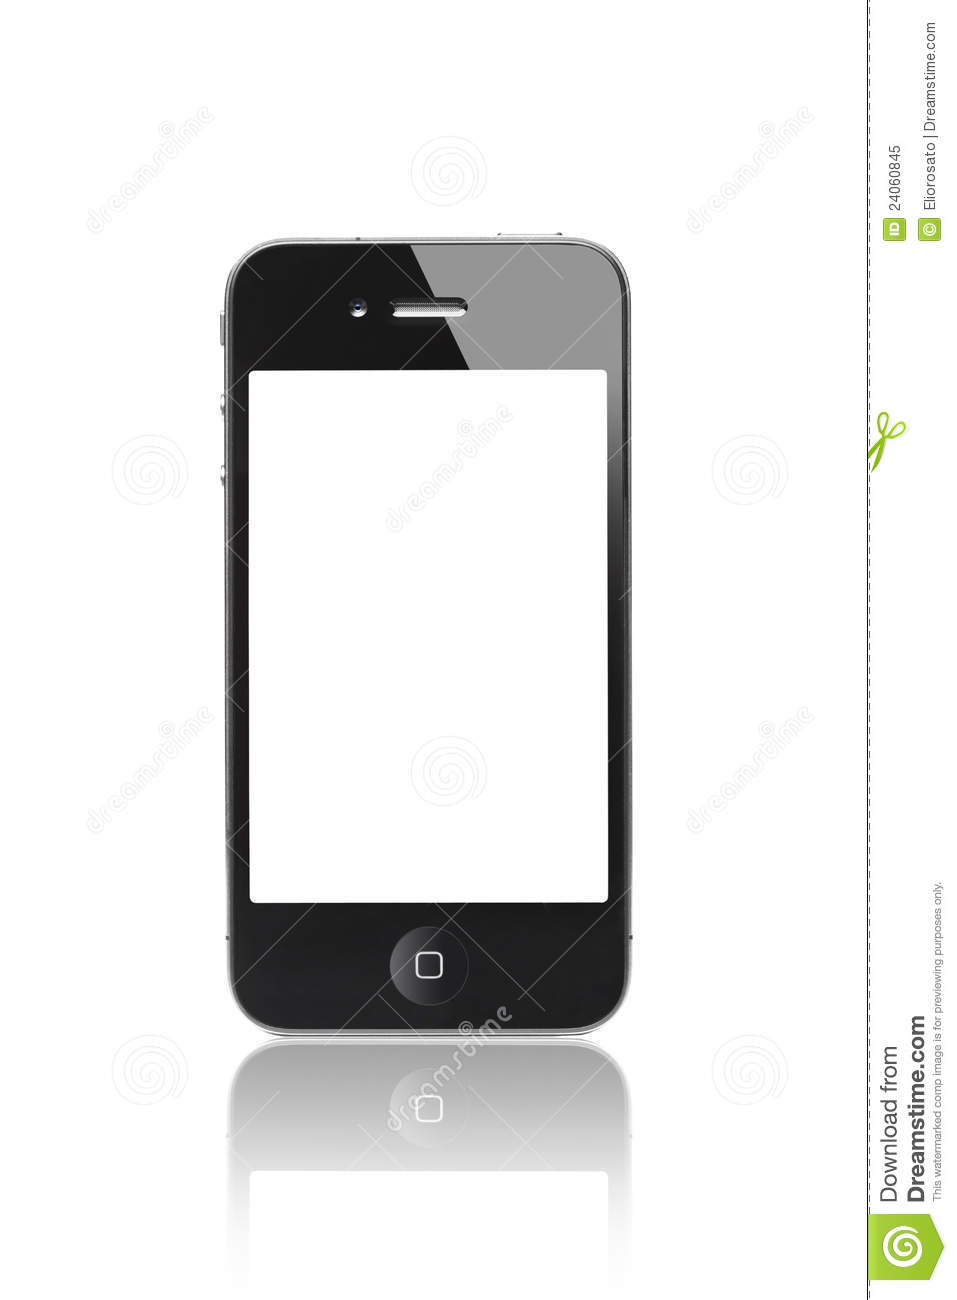 iphone white screen black iphone 4s with a blank screen editorial image 12491